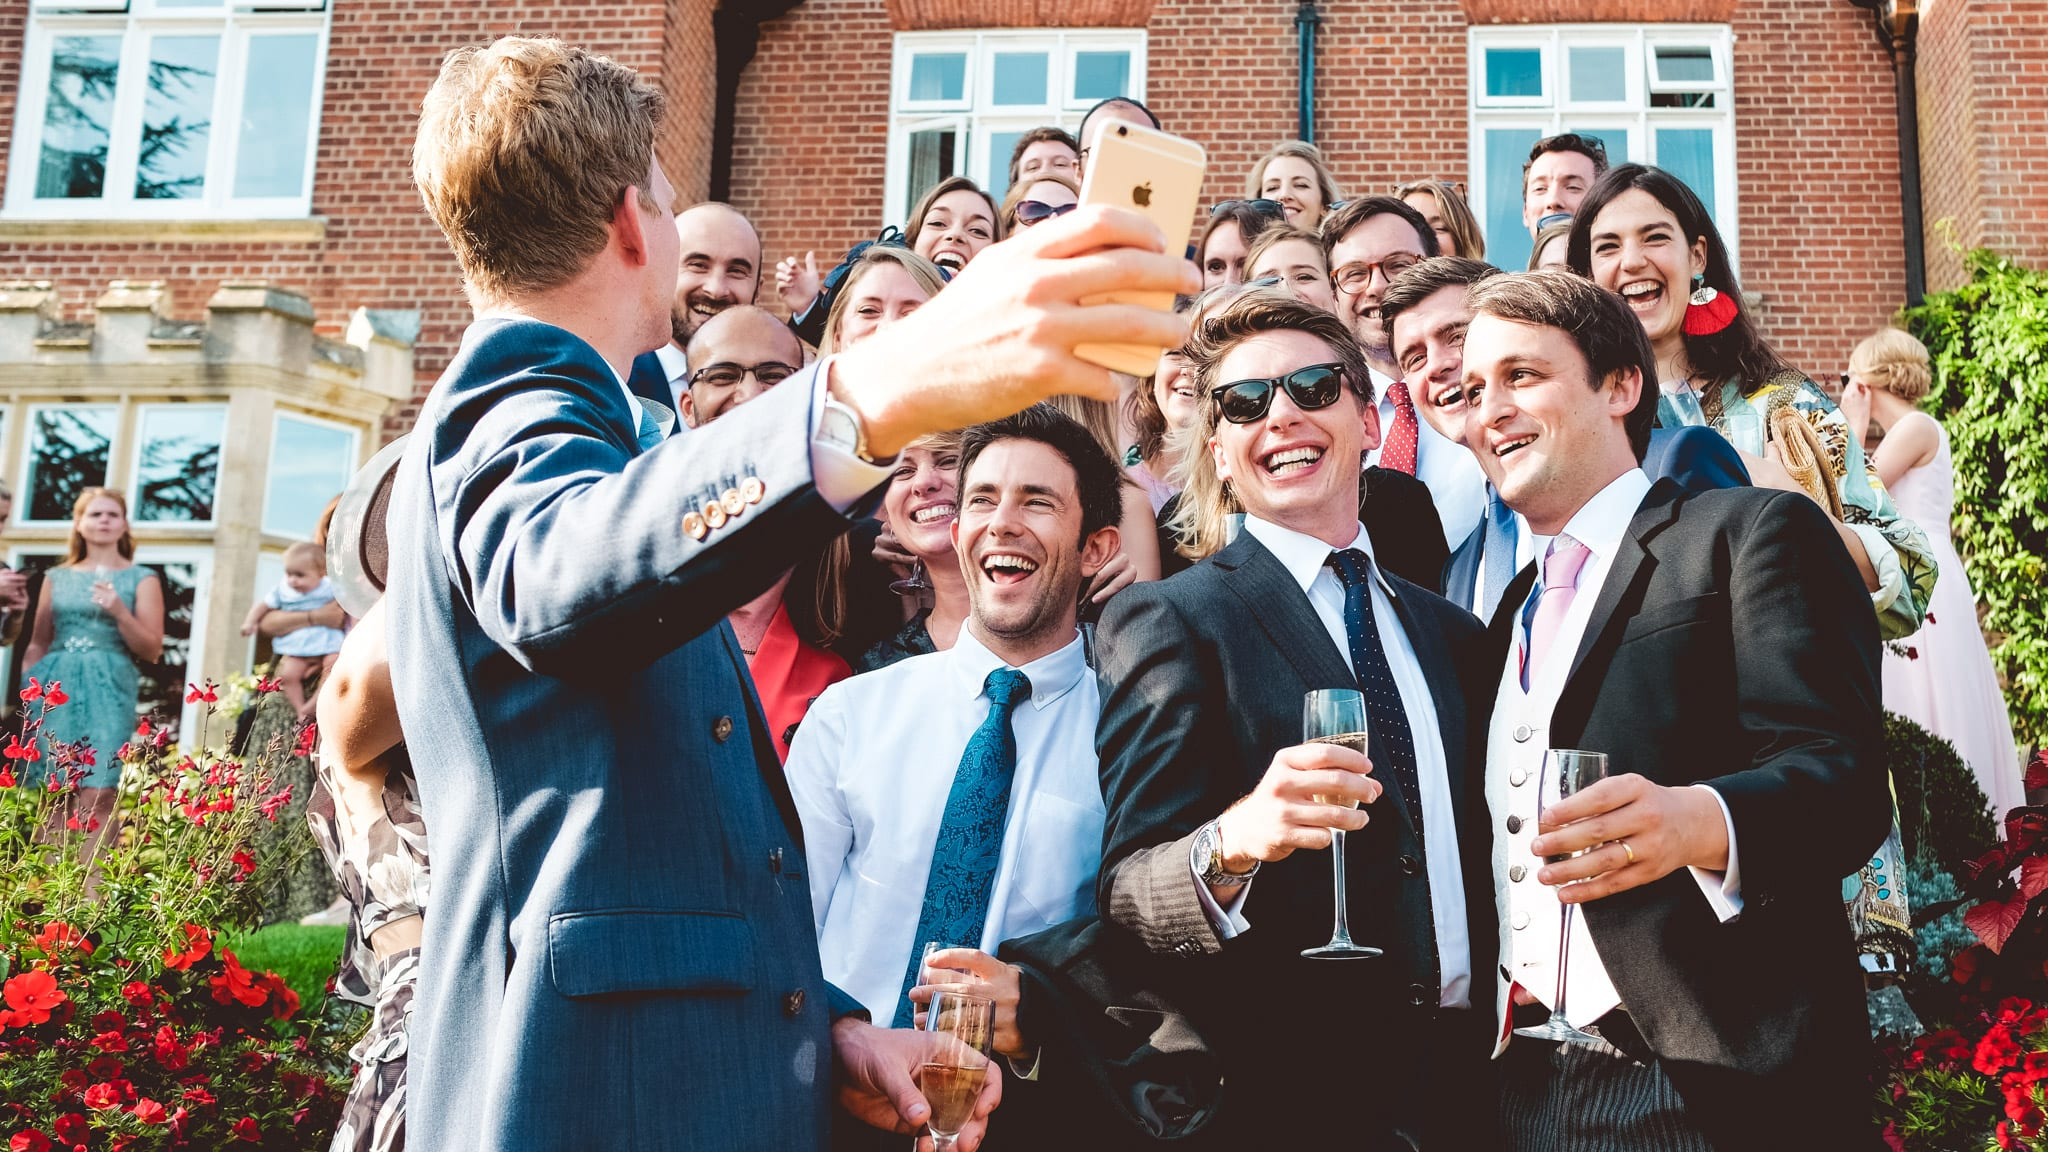 Setting up a wedding selfie with guests